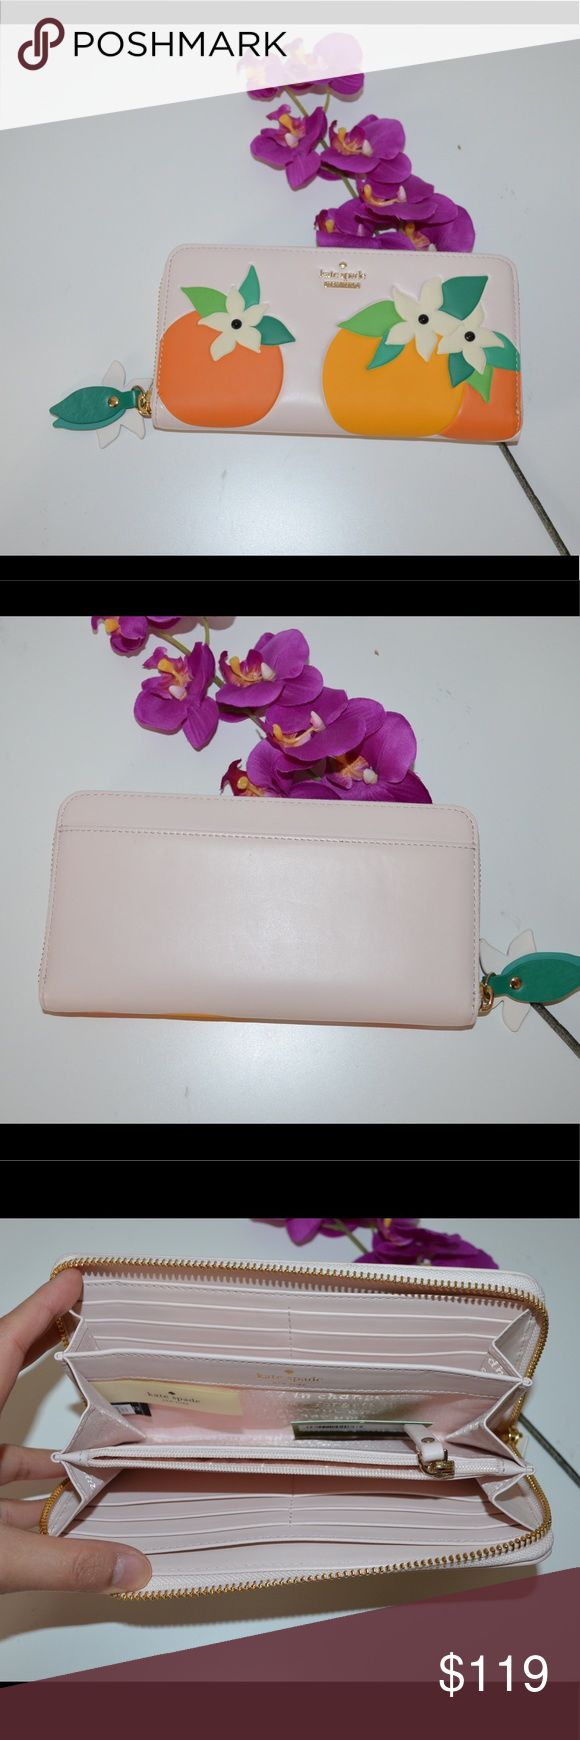 New Kate Spade orange blossom Lacey wallet Brand new with tag, never used. It is from retail style. kate spade Bags Wallets